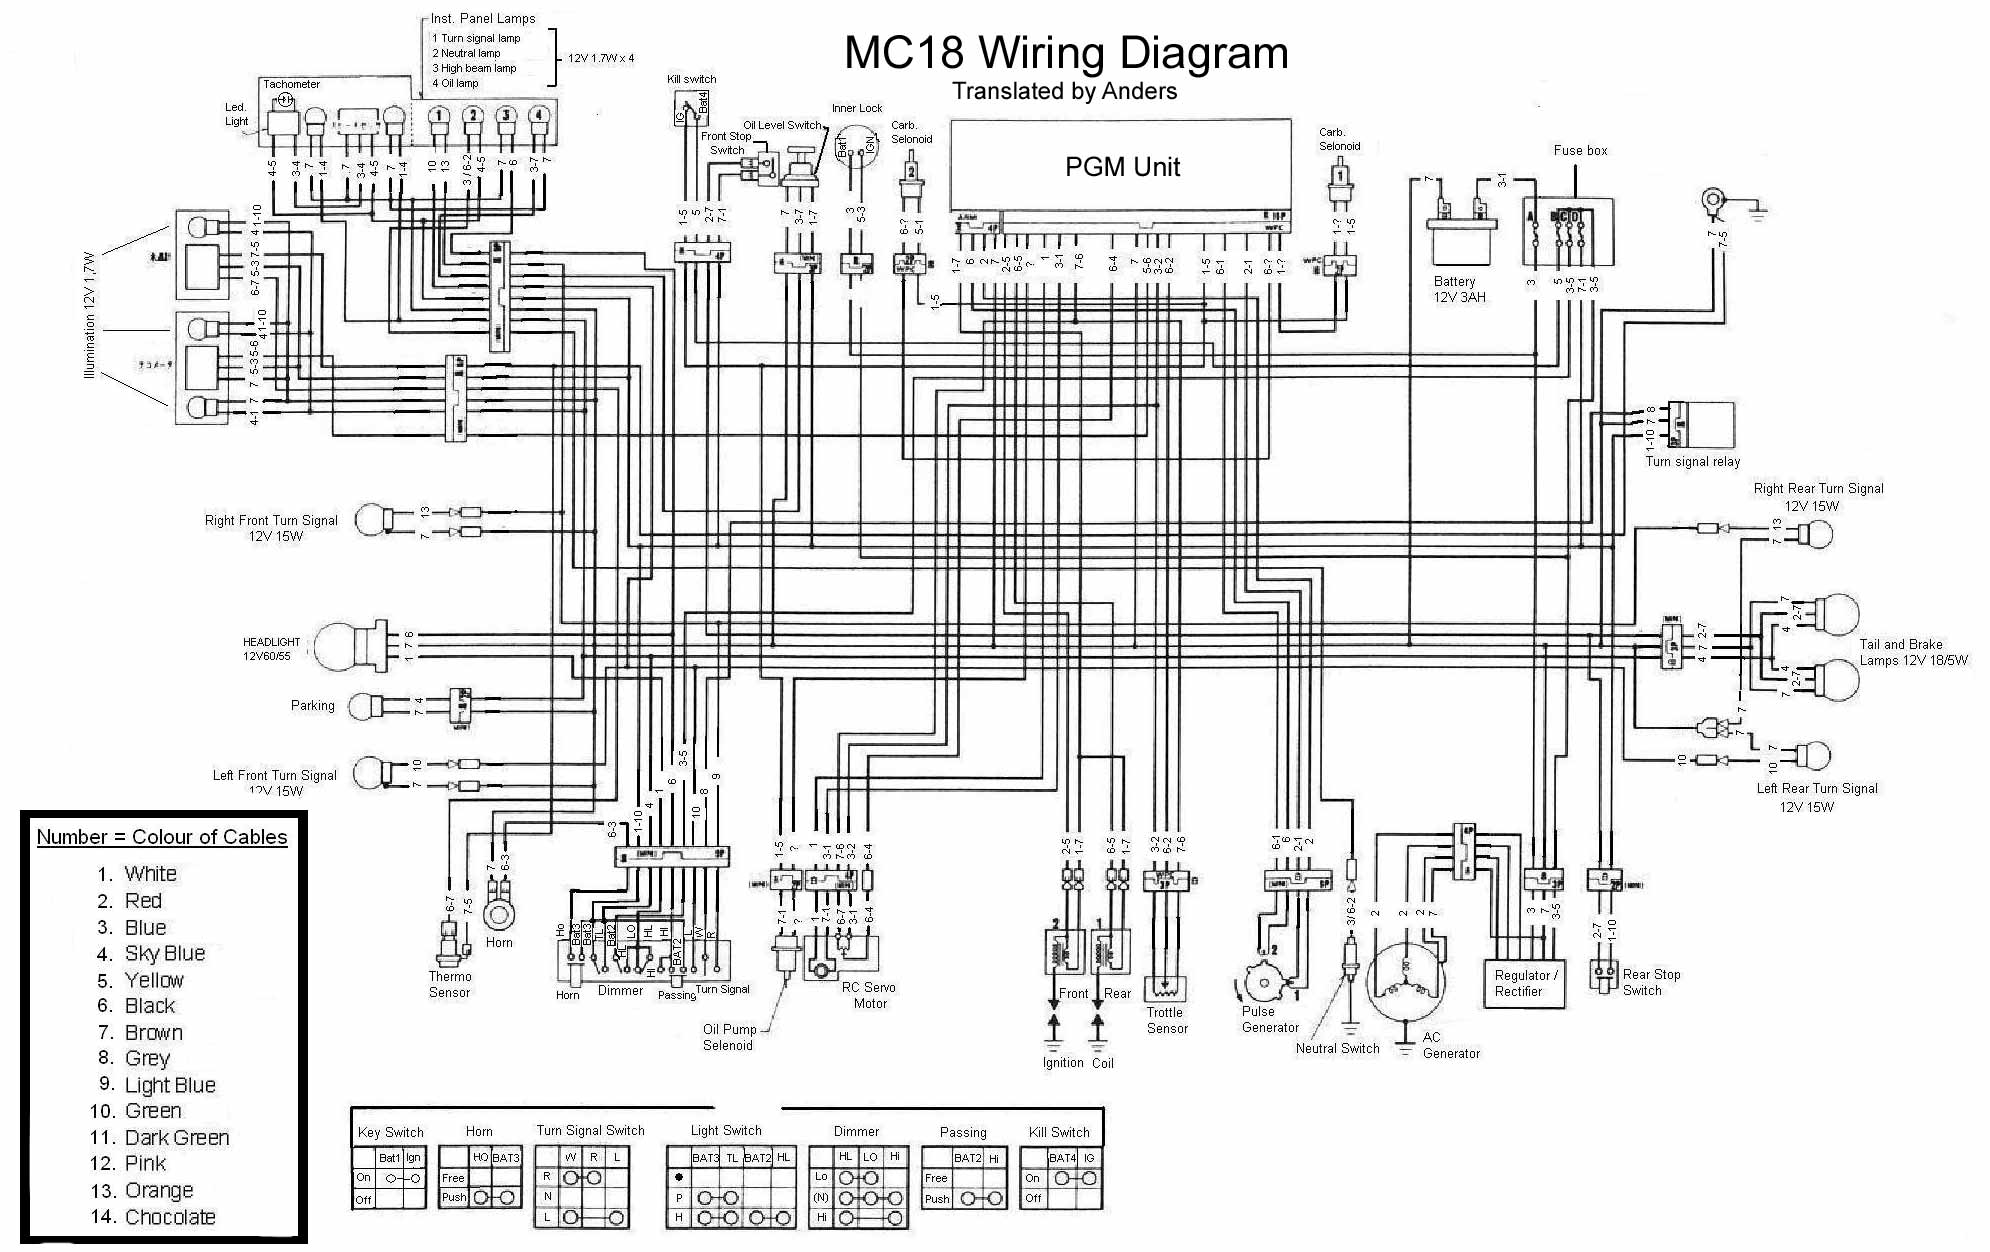 19mc18wired nsr250 wiring diagrams tyga performance 2008 honda cbr600rr wiring diagram at mifinder.co